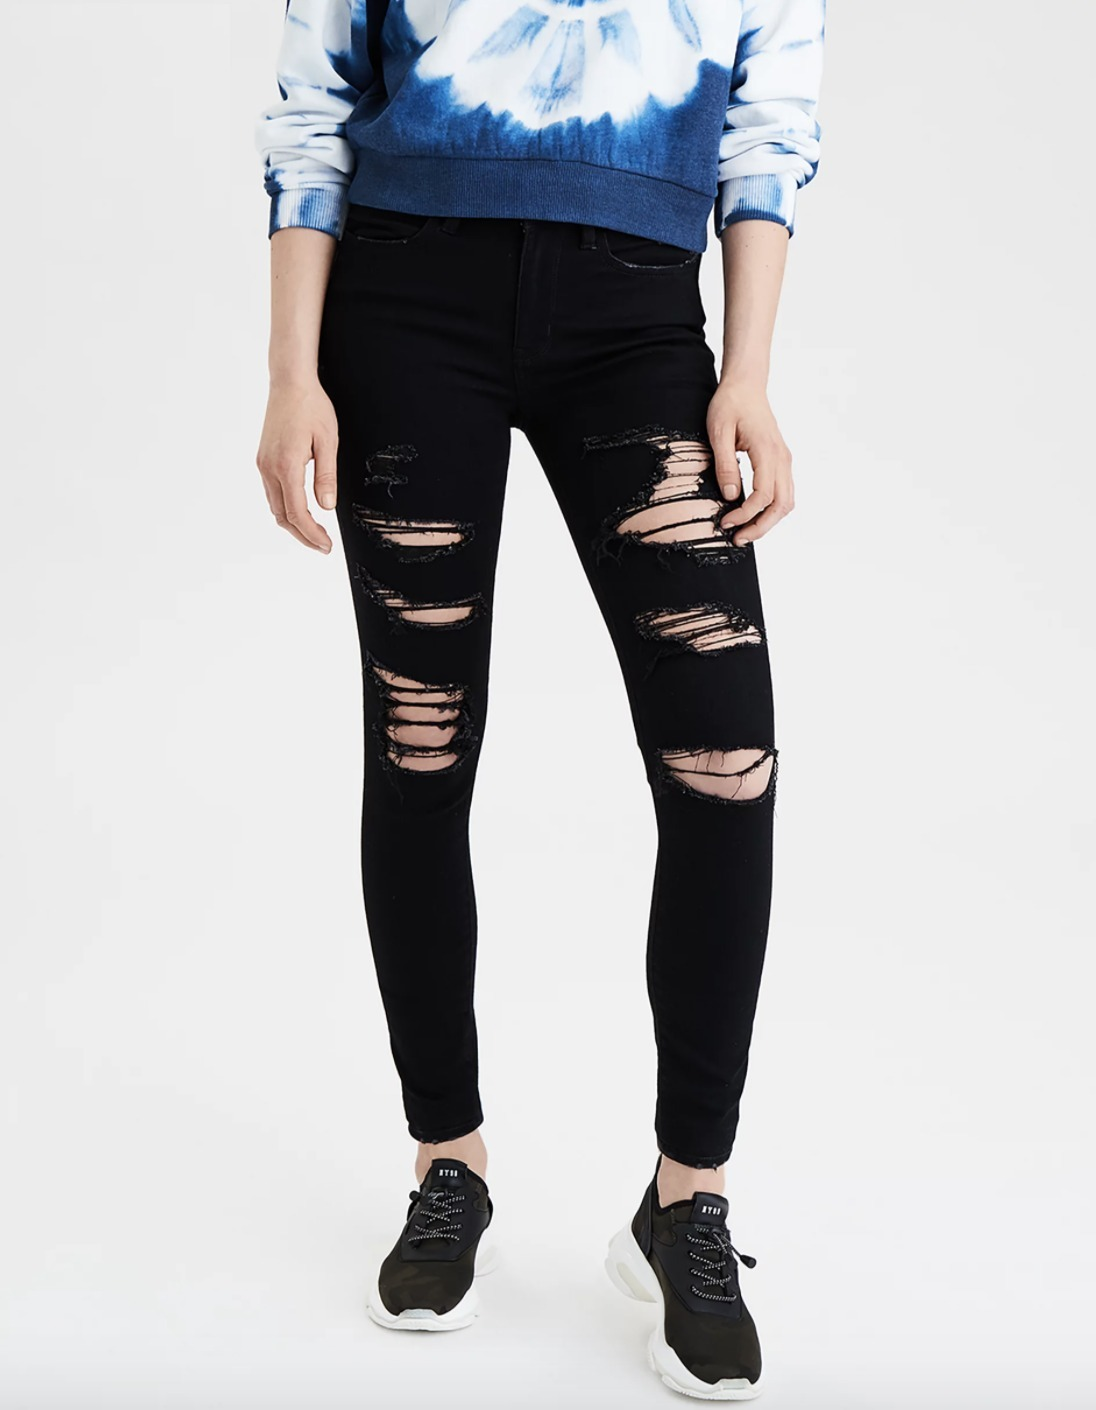 shop american eagle outfitters clothing